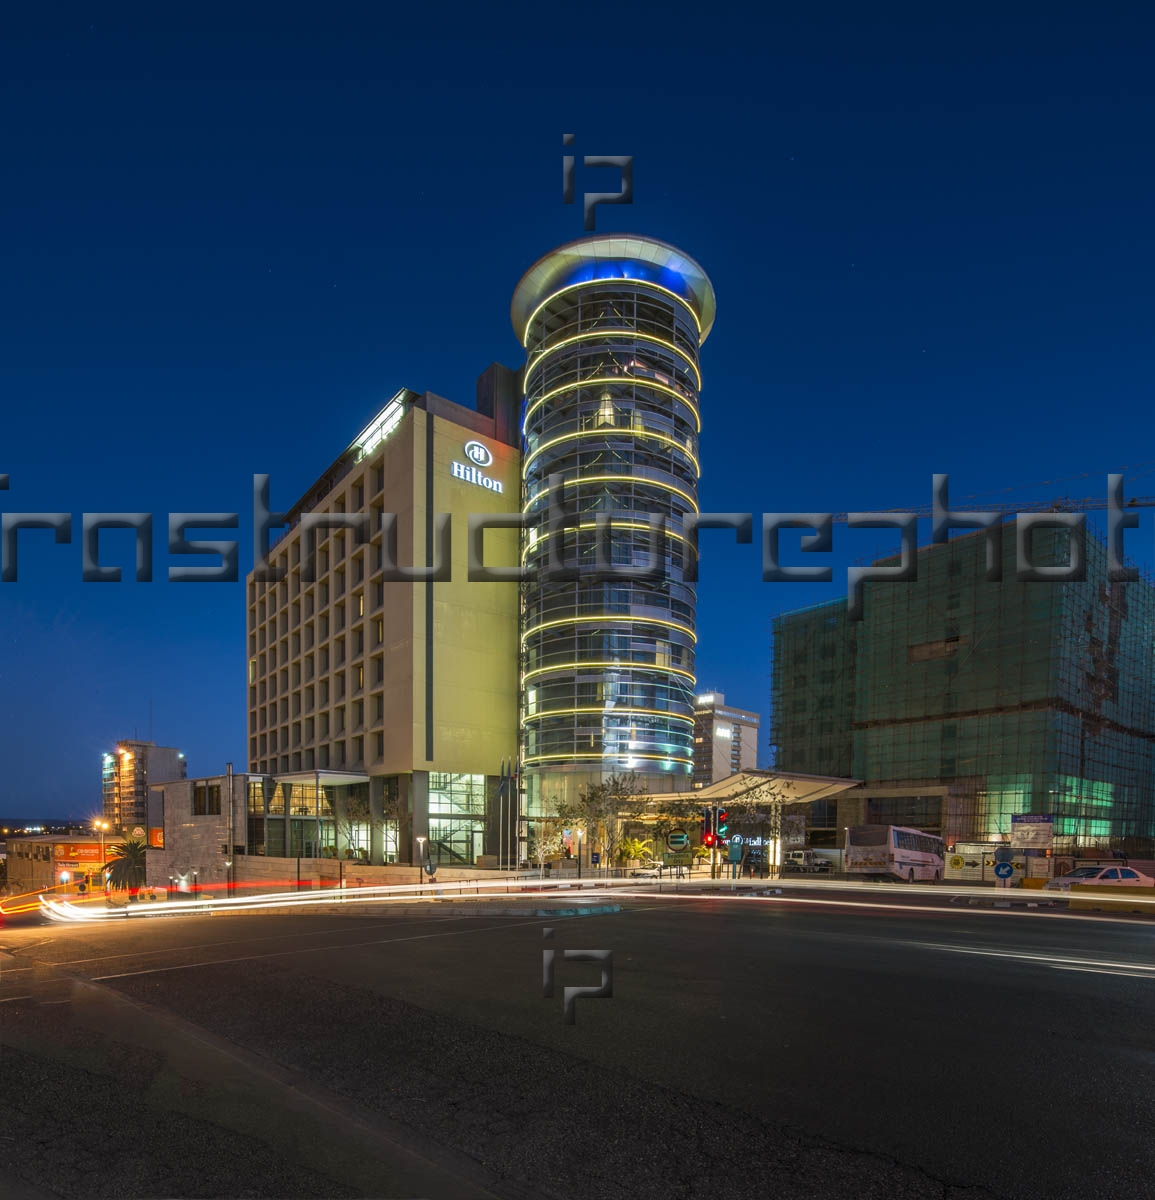 The Hilton Windhoek